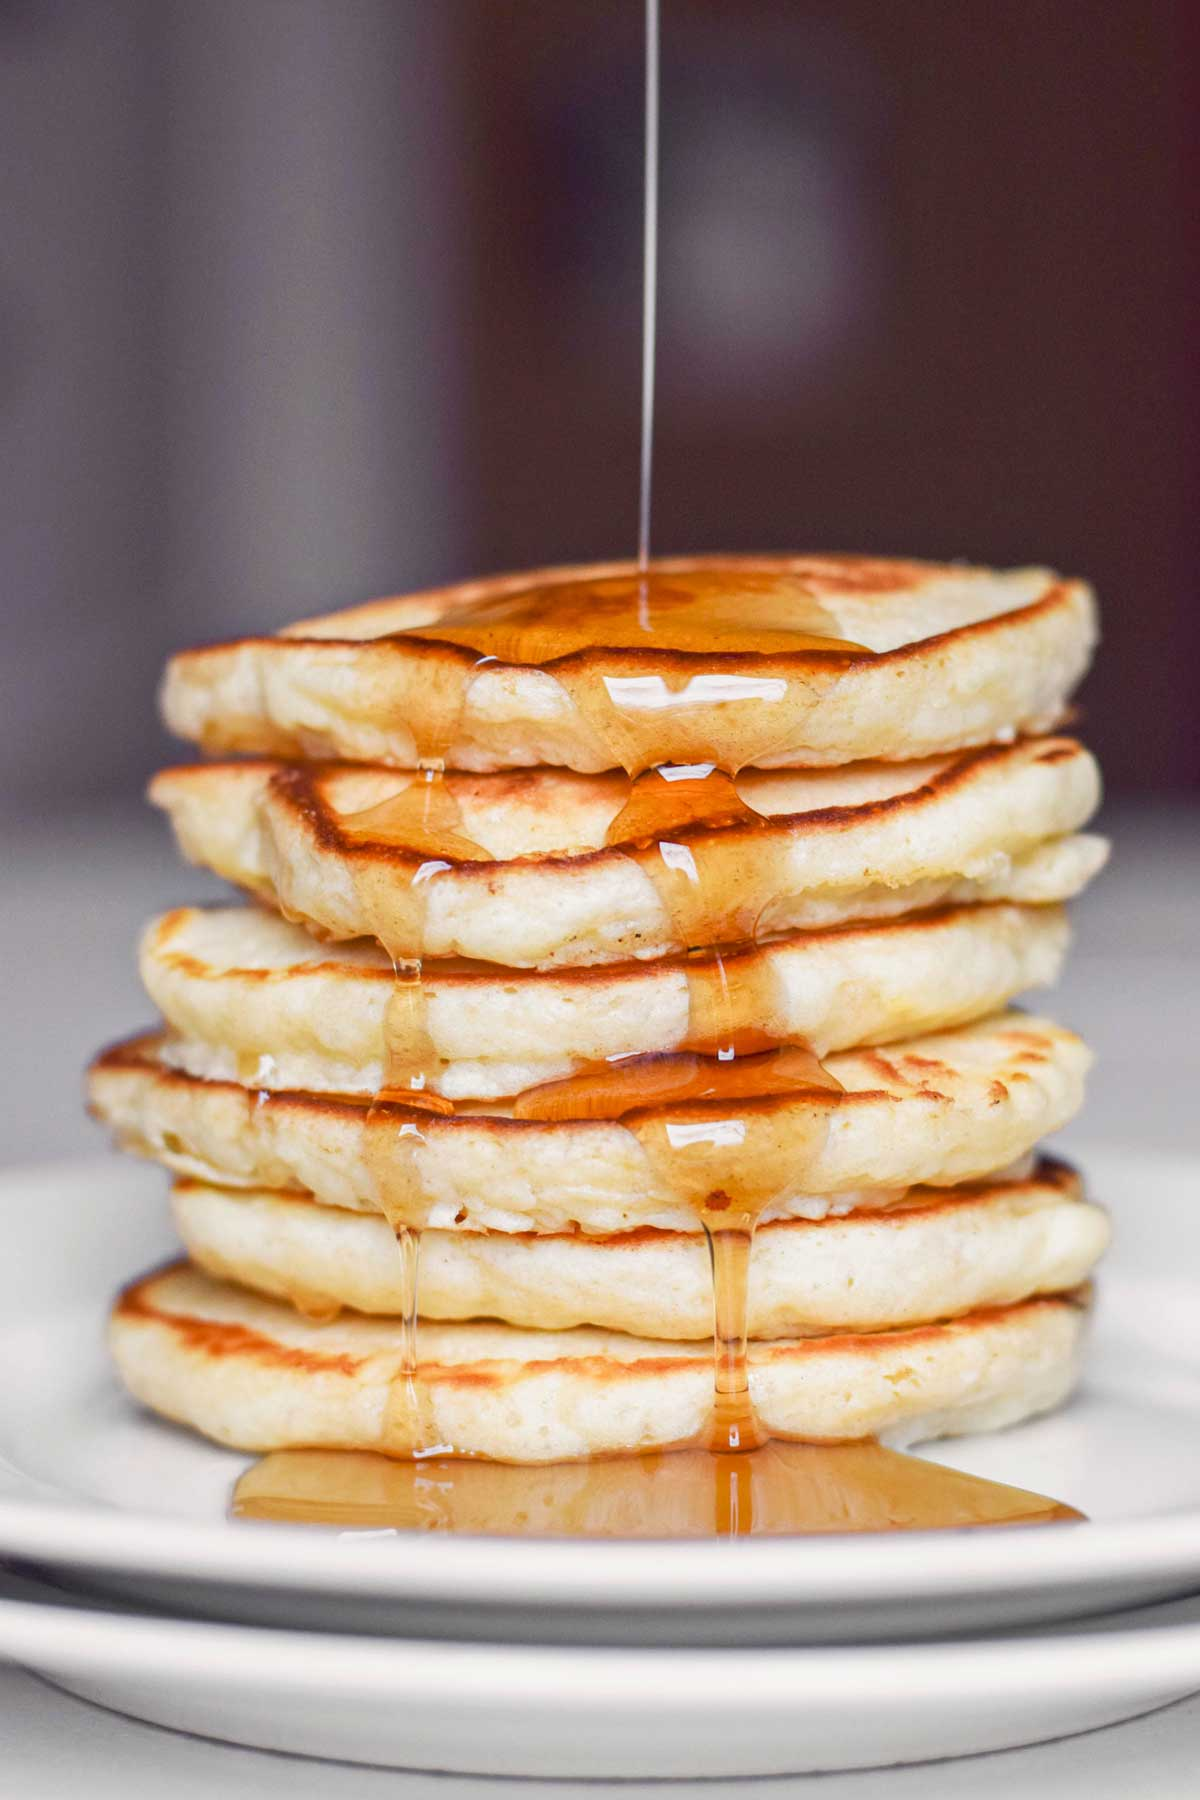 Old Fashioned Pancakes with Syrup